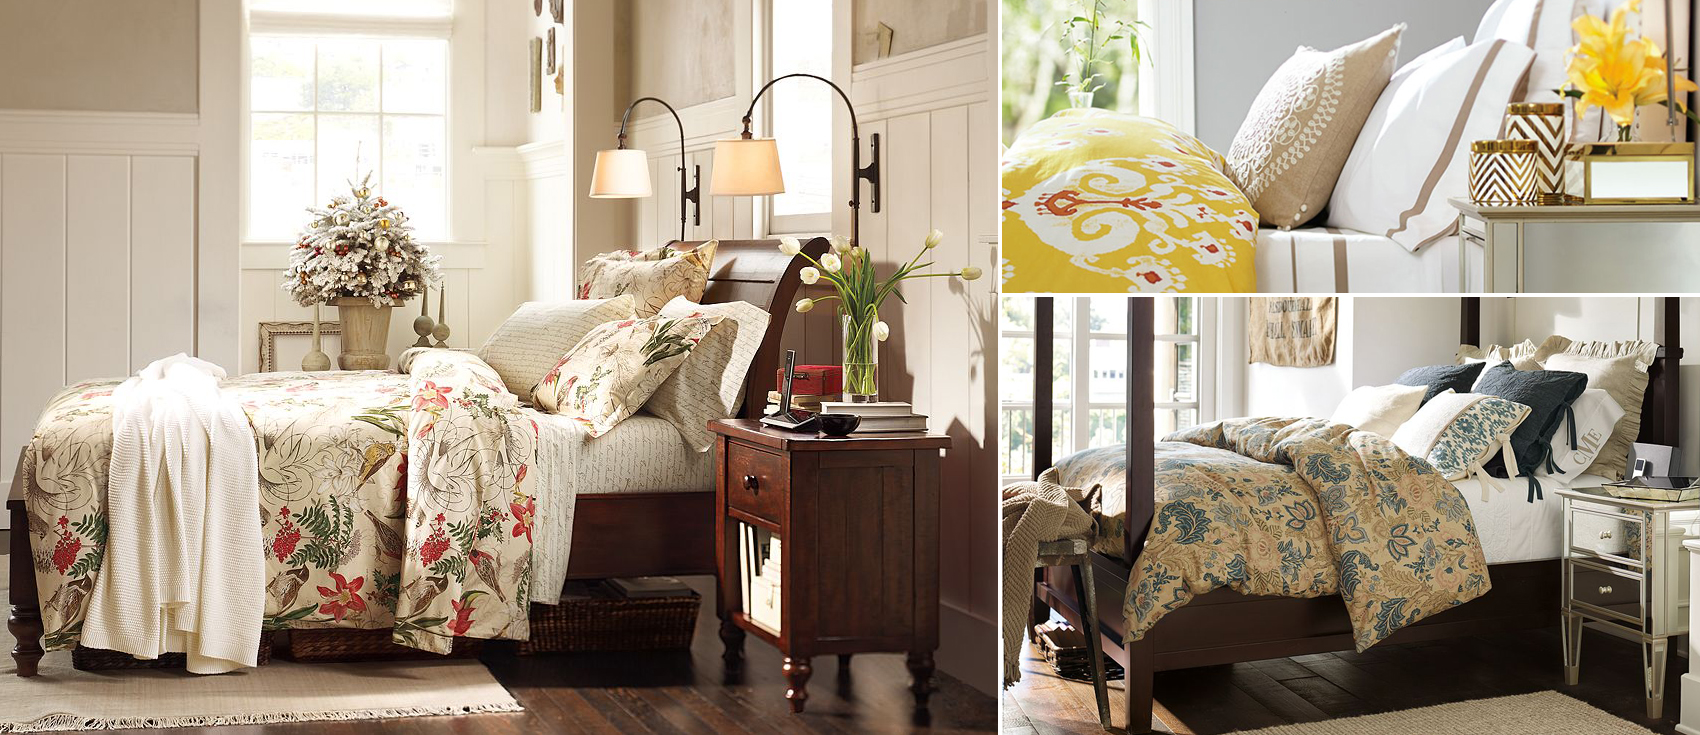 bed sets | pottery barn bedding | duvet covers & quilts